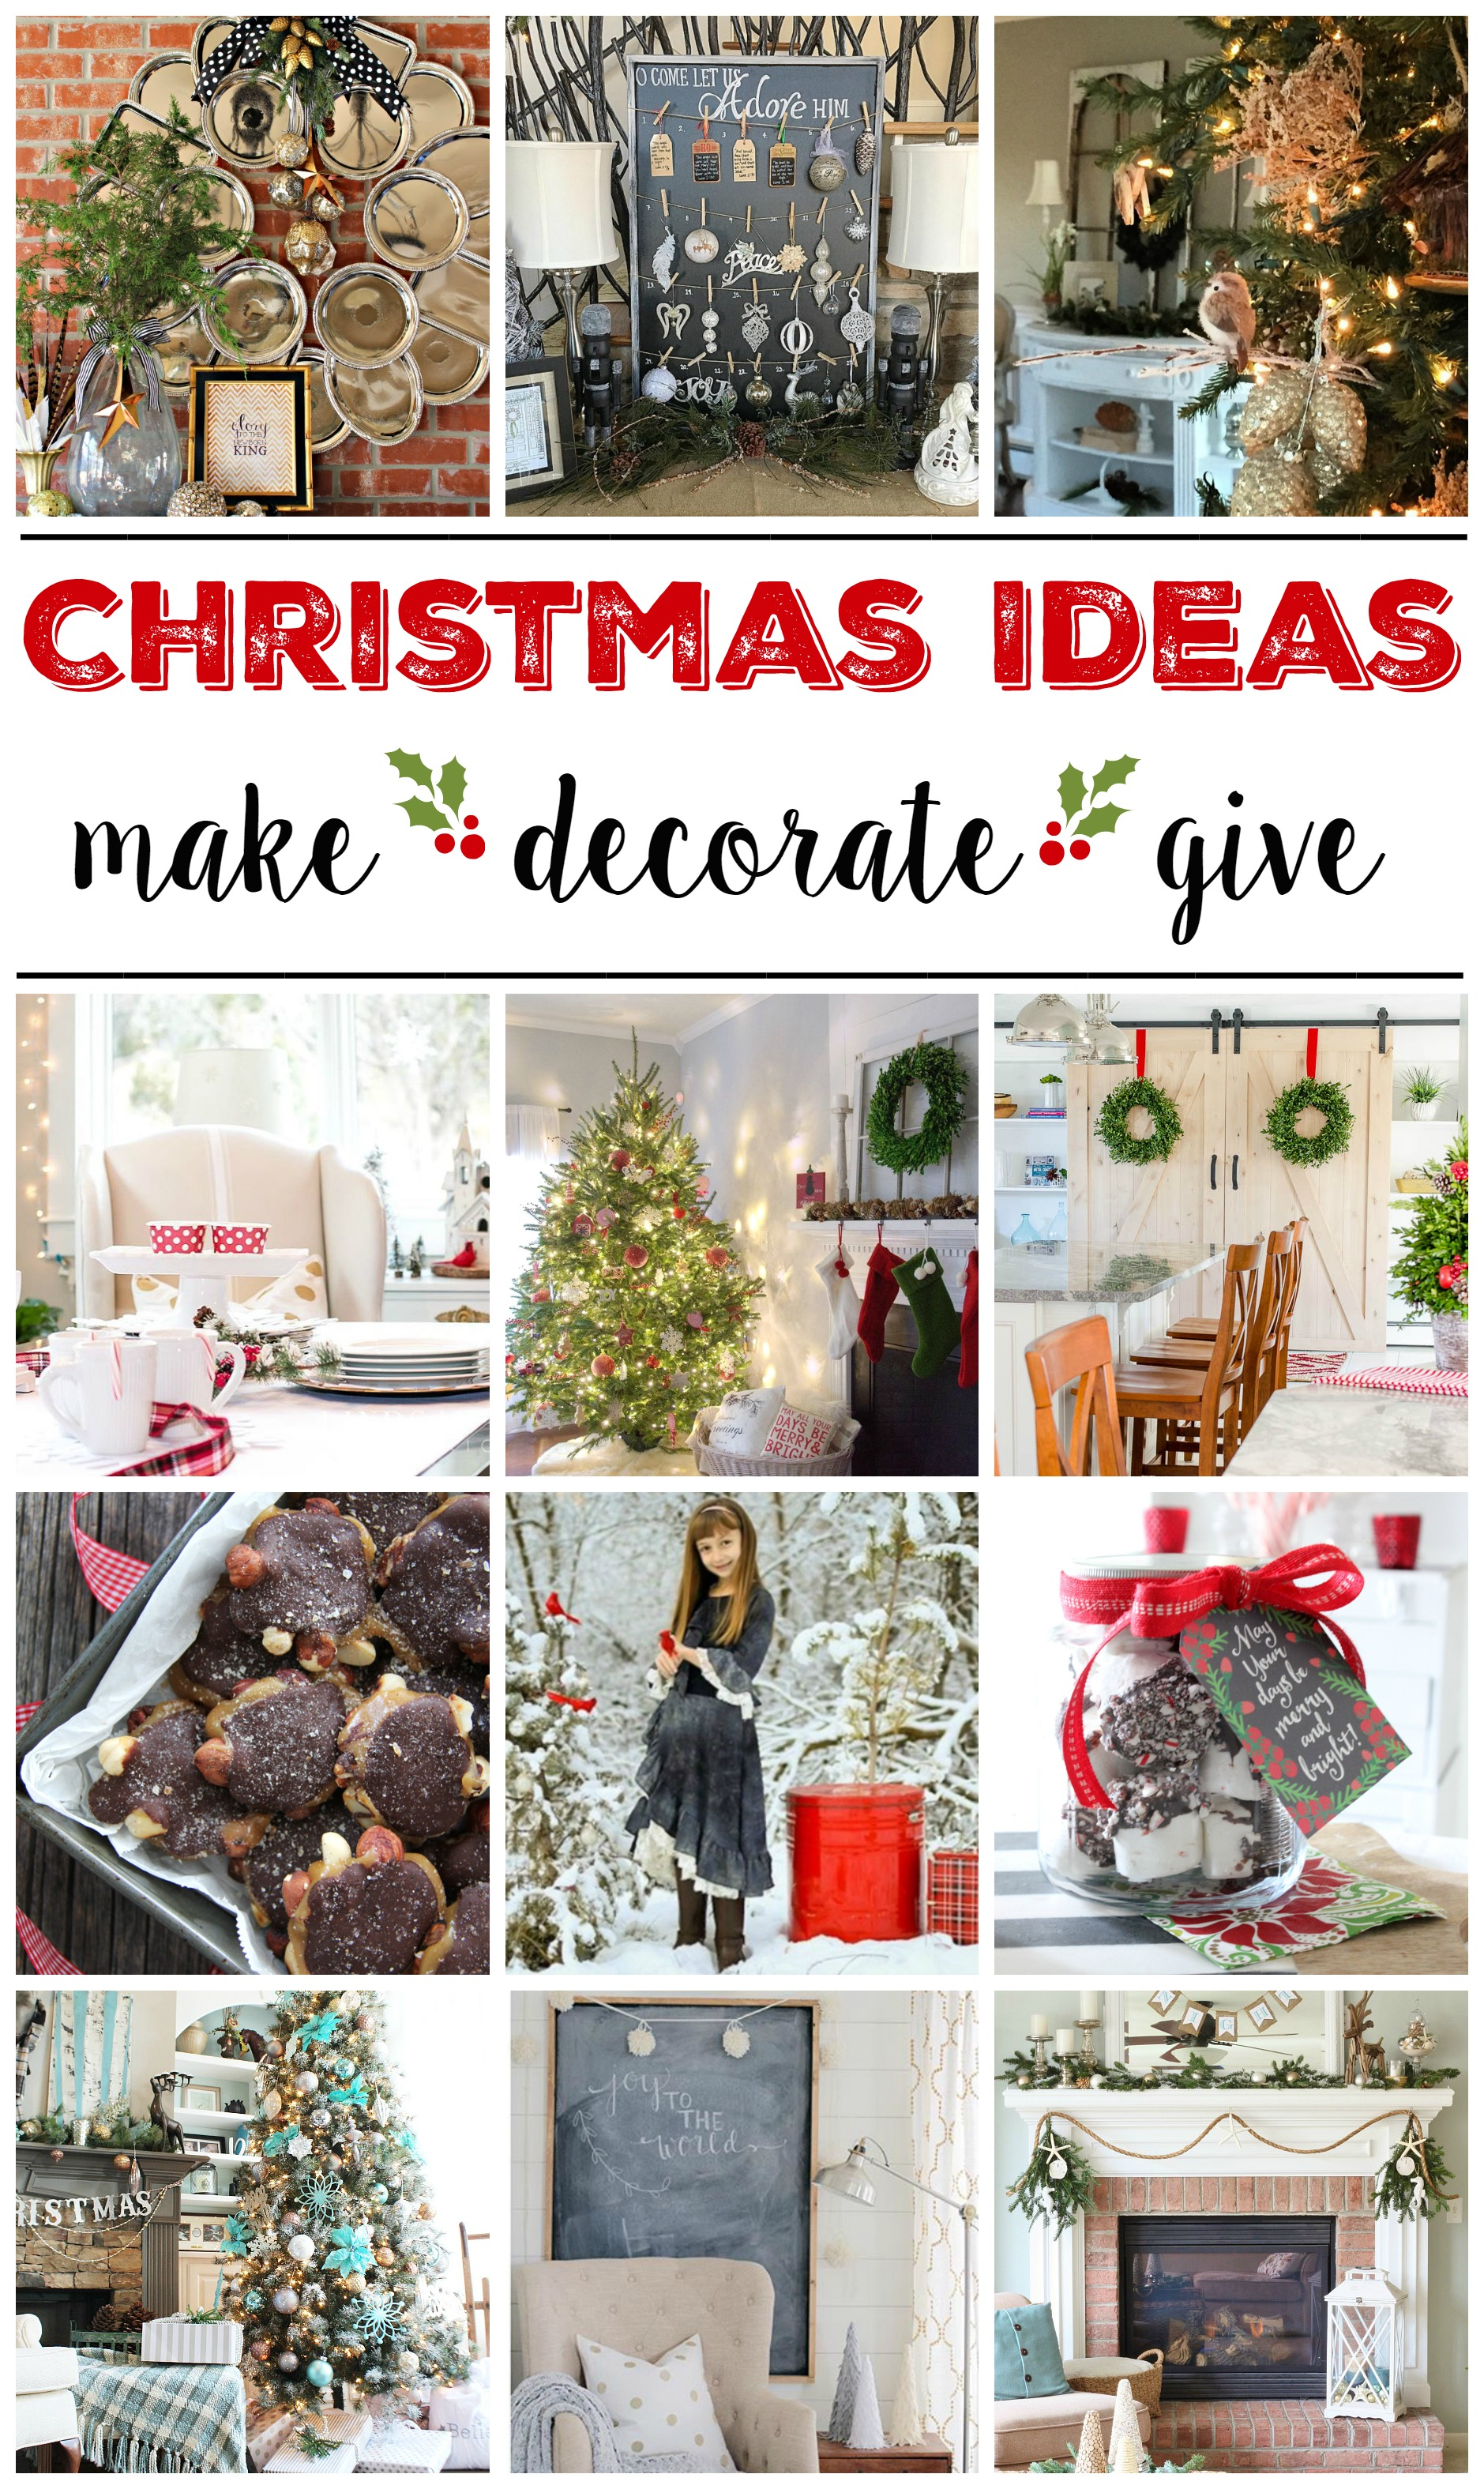 Make, Decorate, Give - Christmas Ideas from #foxhollowfridayfavs on Instagram - foxhollowcottage.com